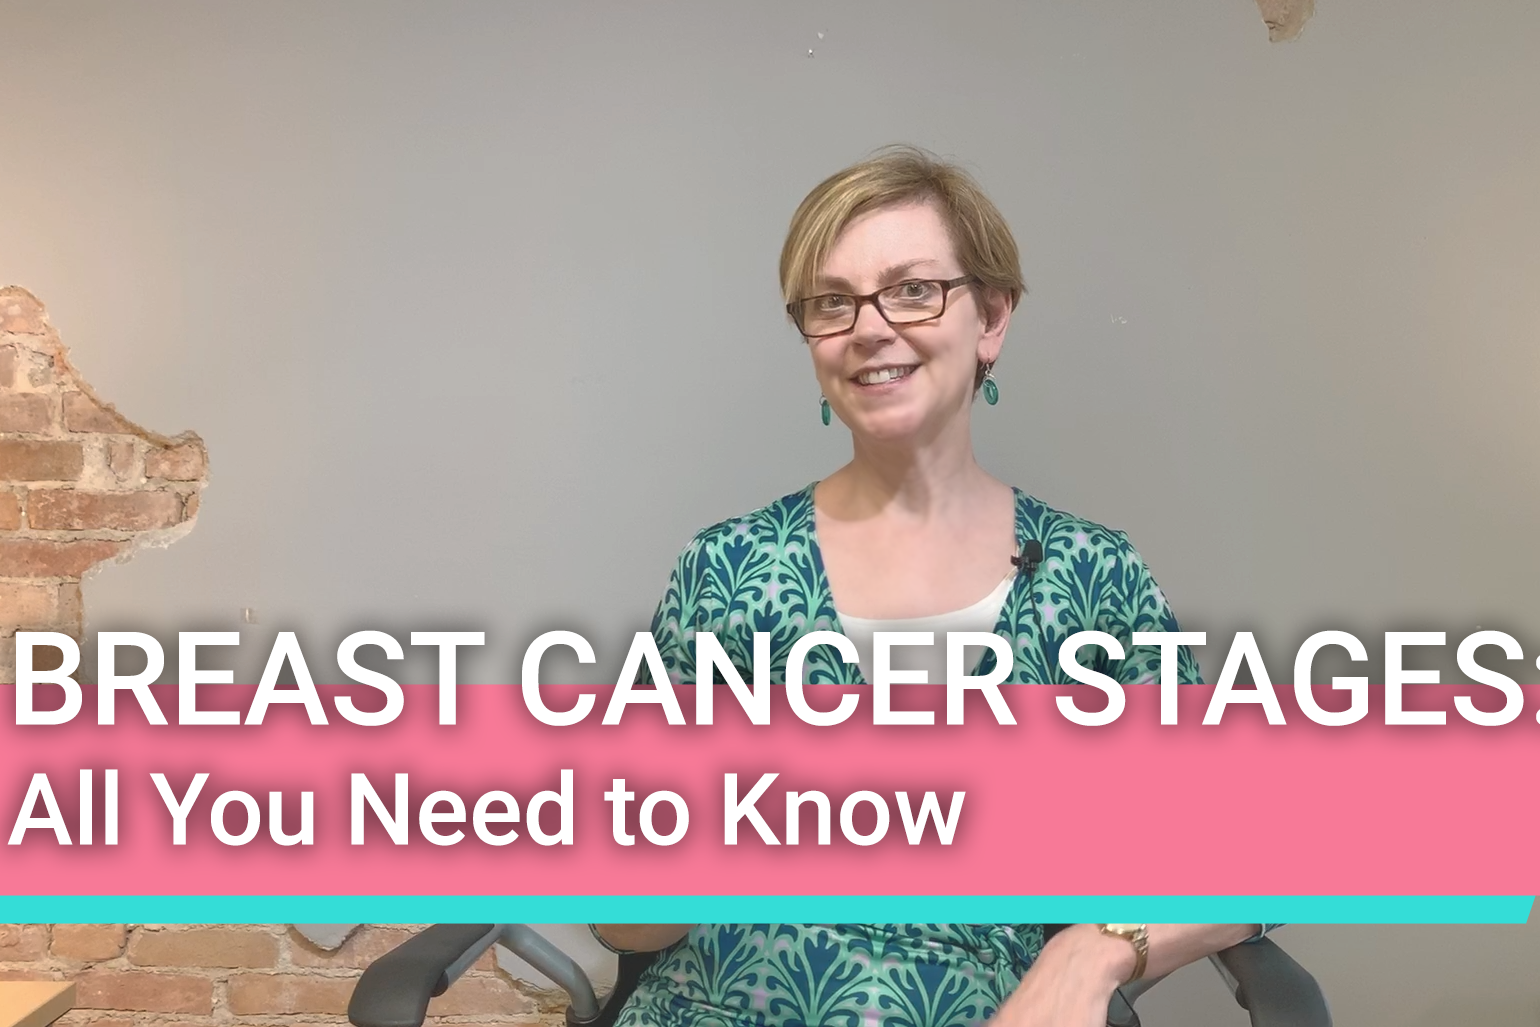 Breast Cancer Stages: All You Need to Know